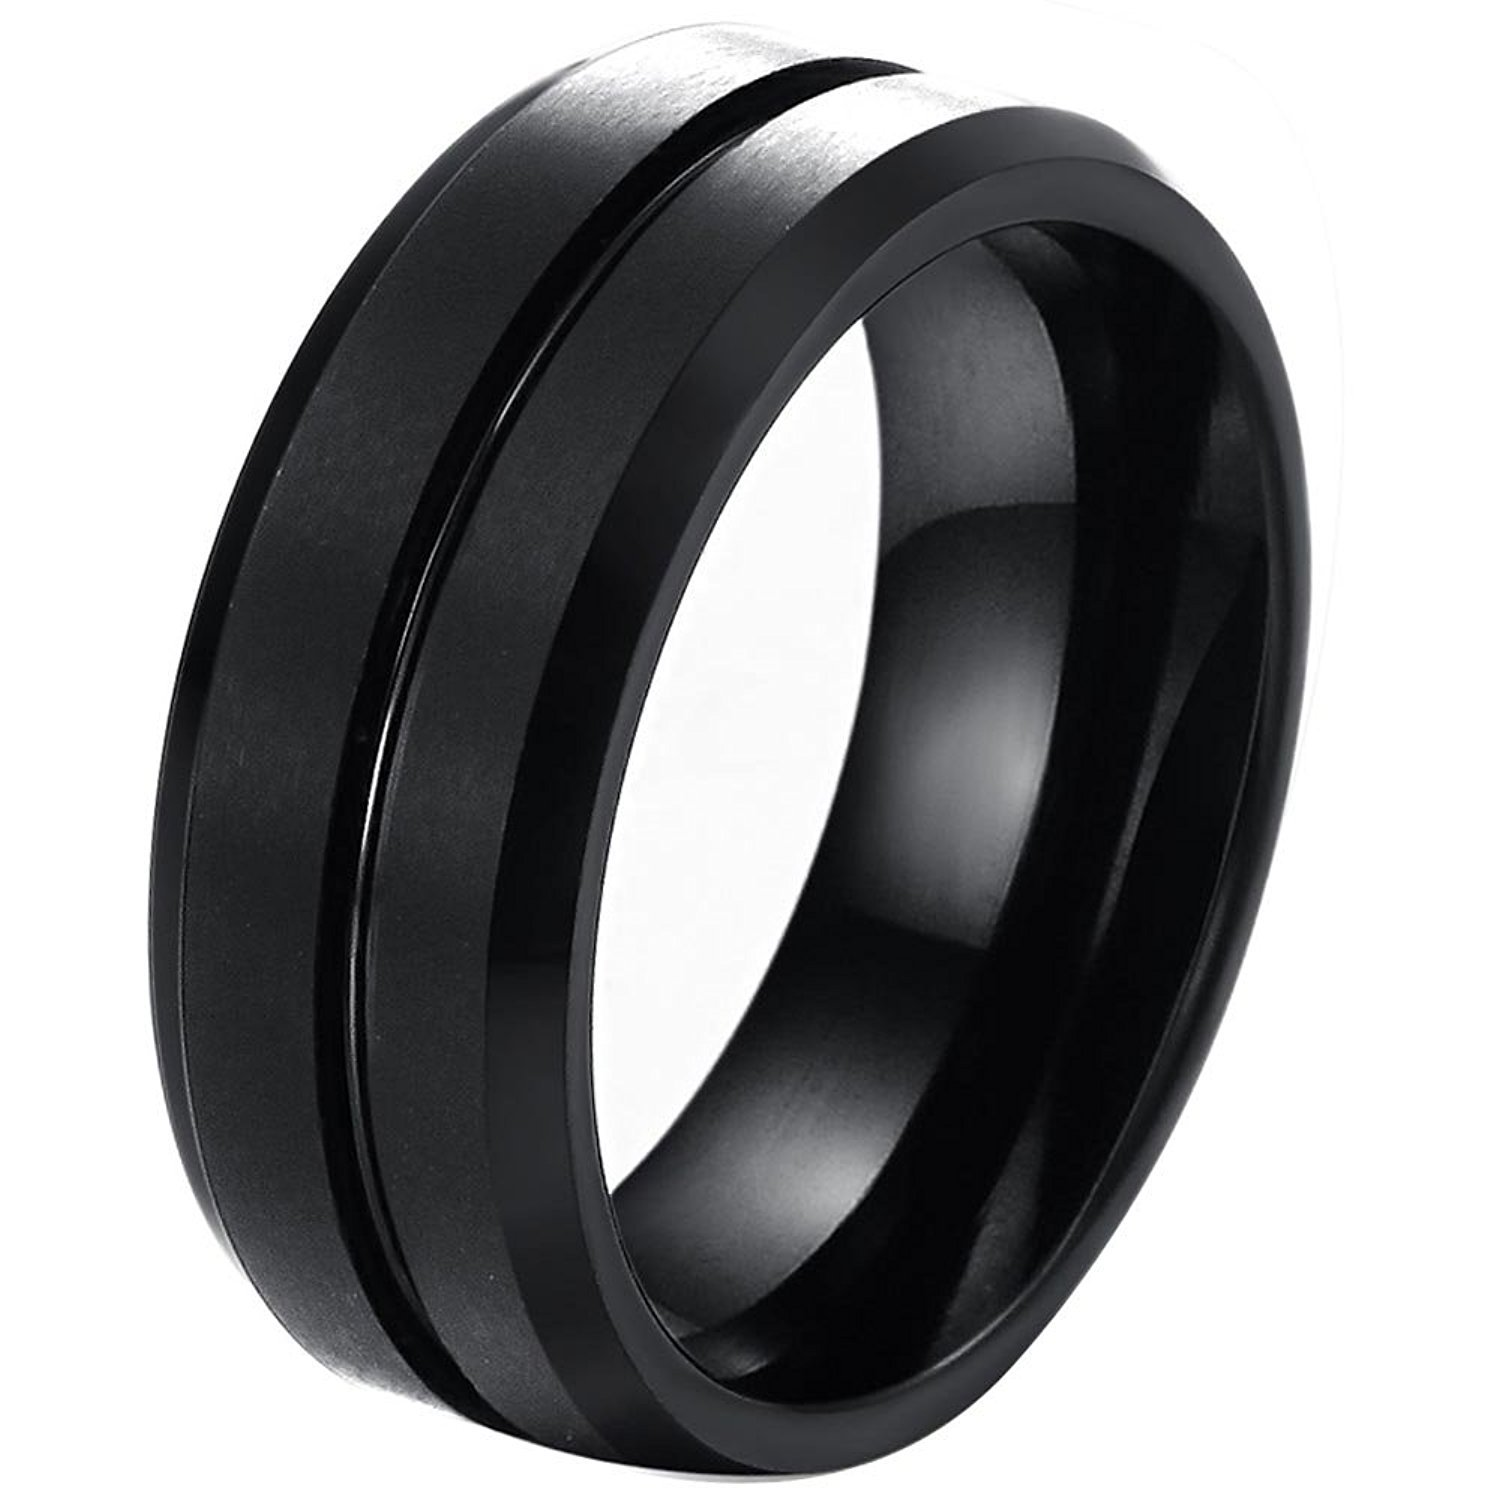 OUBEY Mens 8mm Polished Edge/ Matte Brushed Finish Grooved Center Tungsten Ring Wedding Band Black